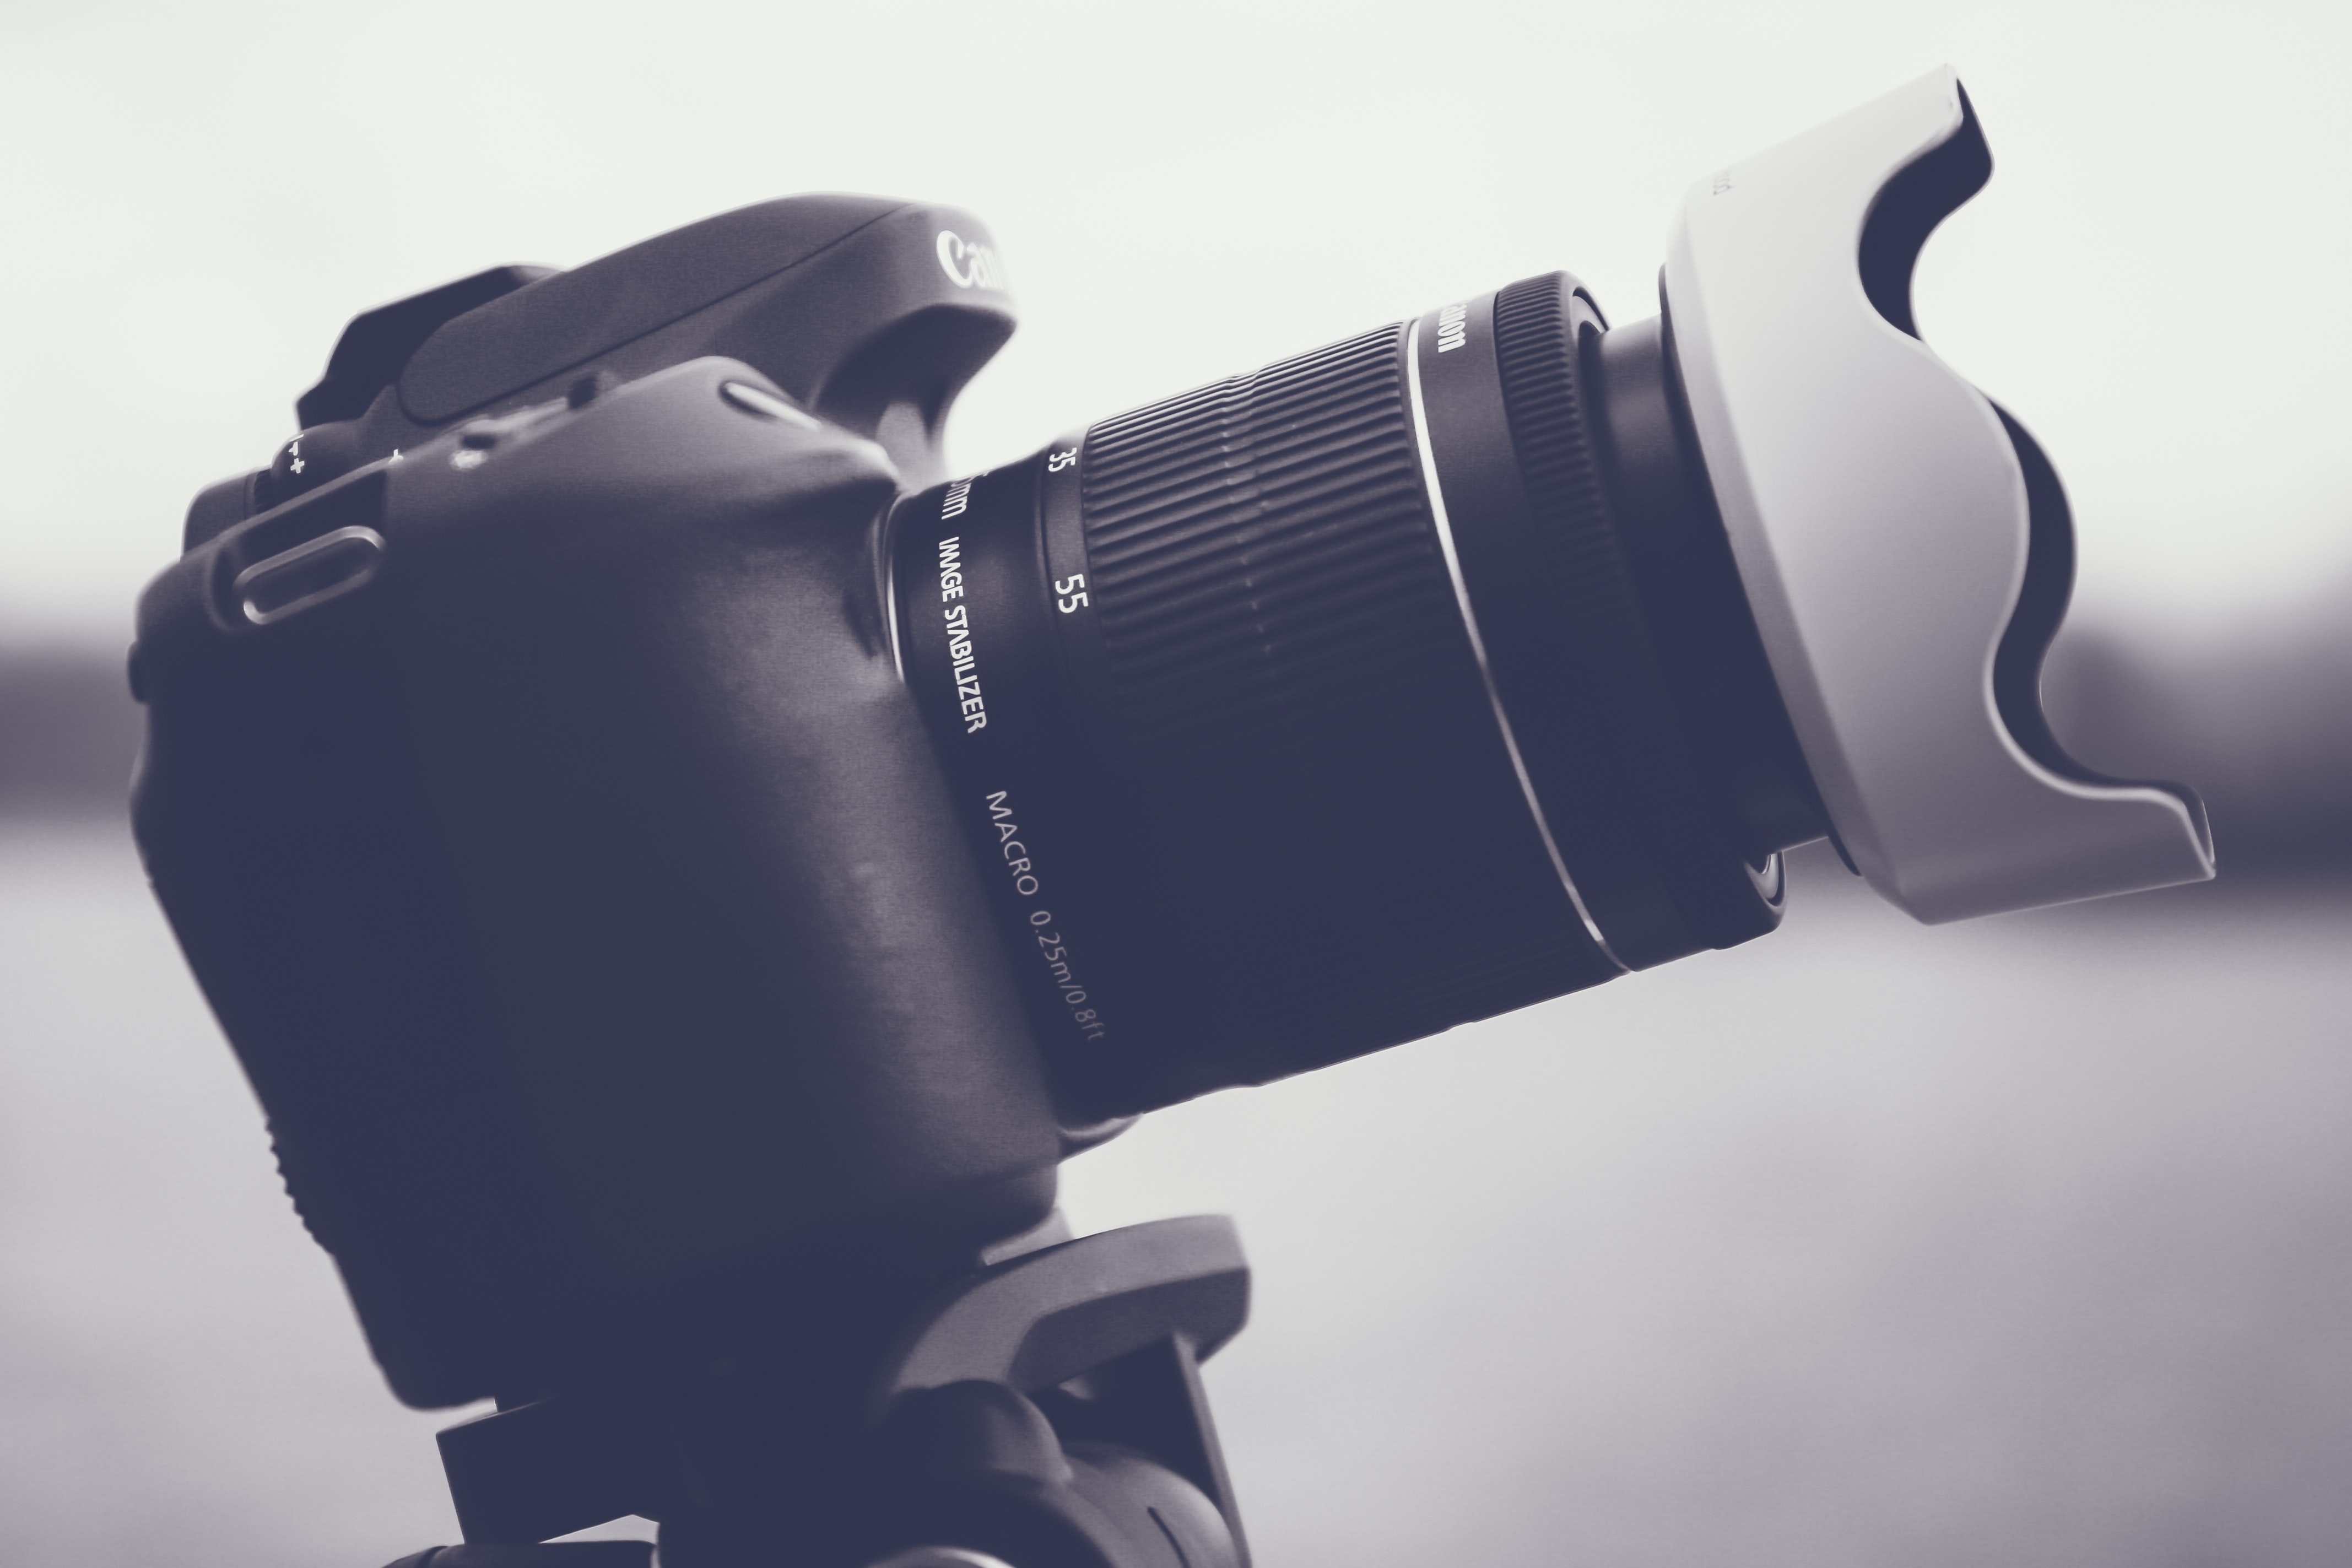 Black and Gray Dslr Camera With Lens, Aperture, Black-and-white, Camera, Camera lens, HQ Photo